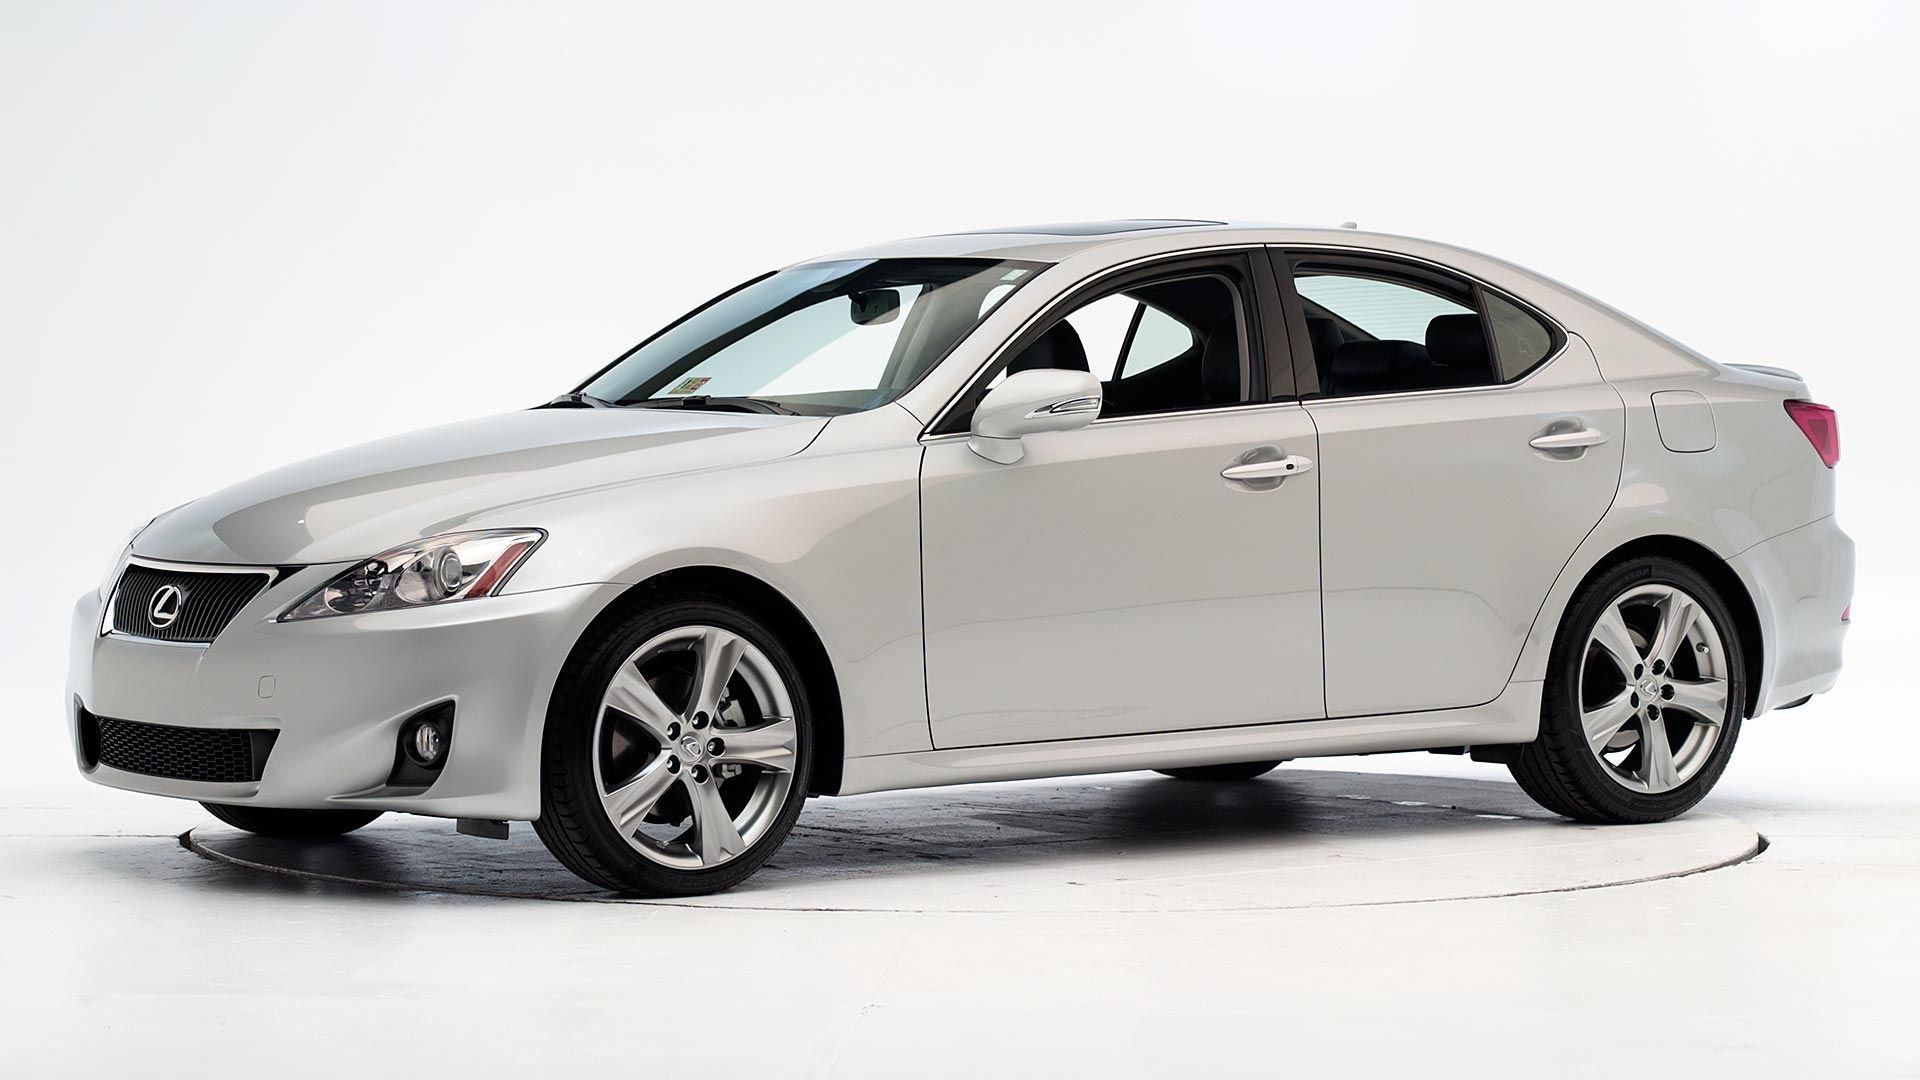 2013 Lexus IS 4-door sedan